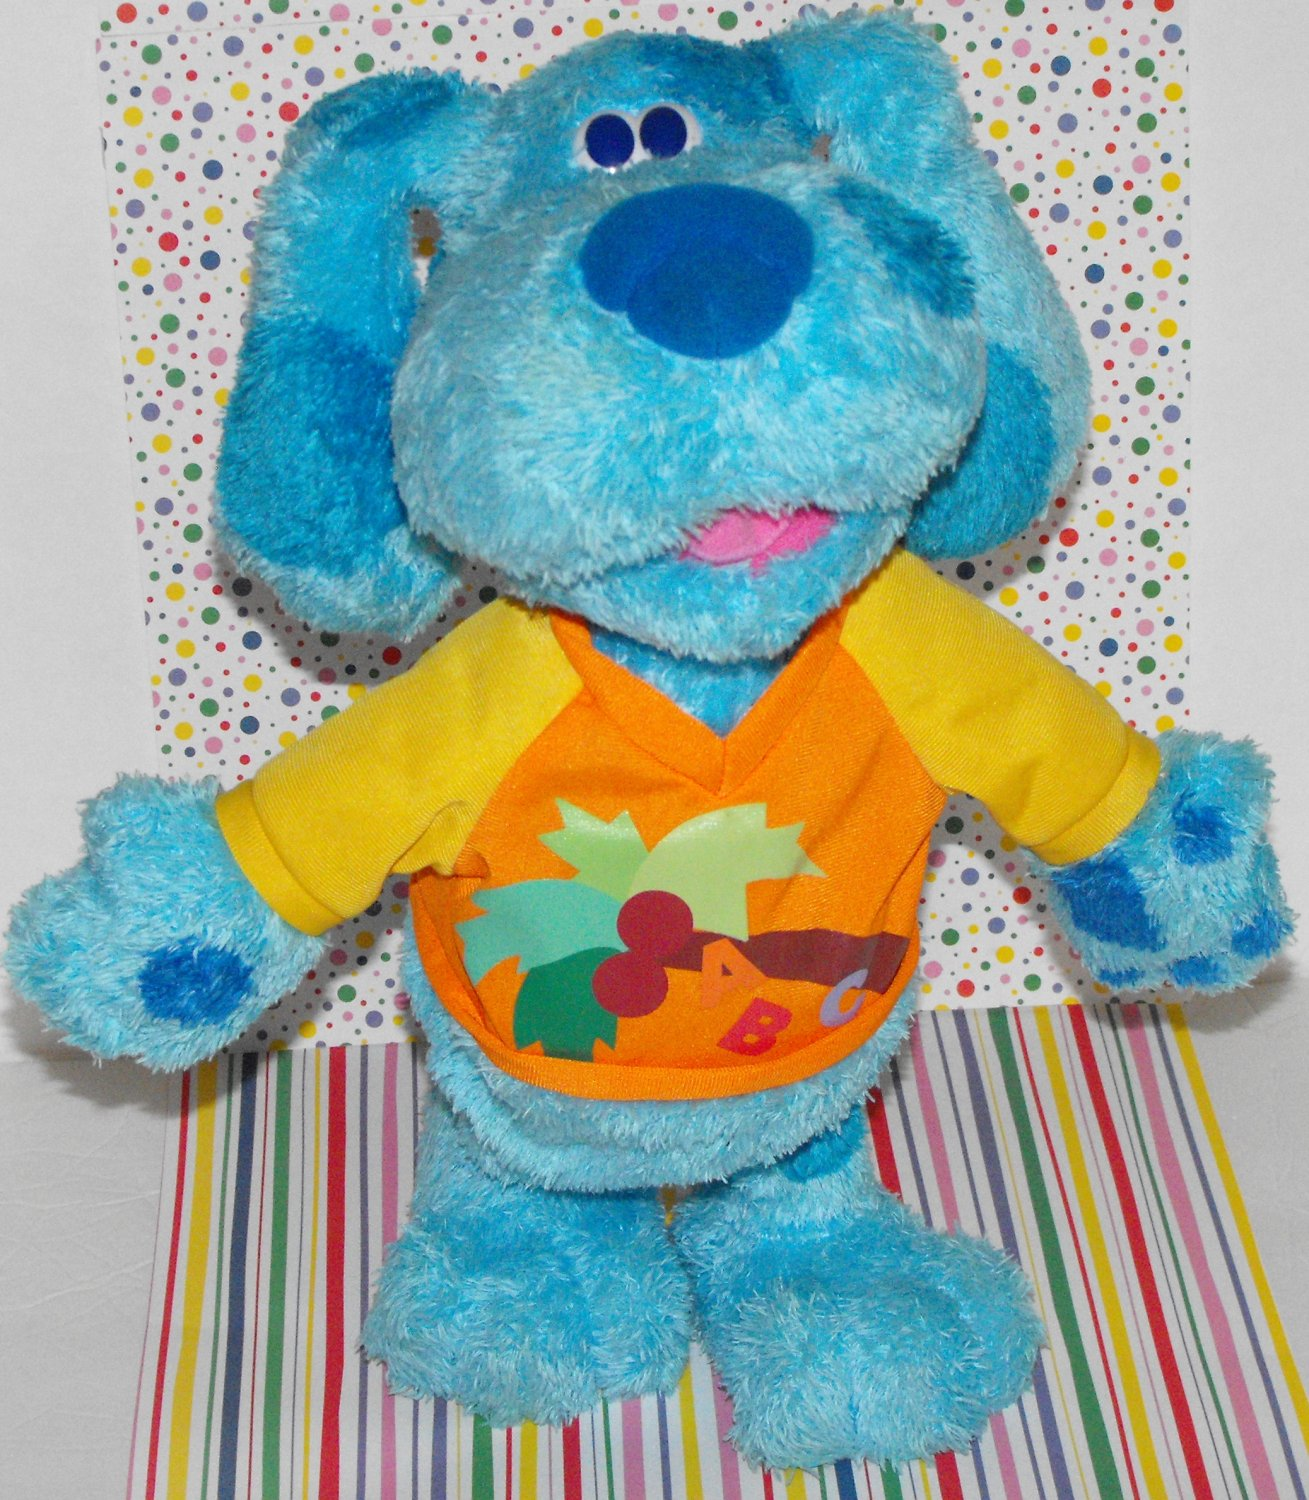 ~SOLD~Awaiting Feedback~Chicka Chicka Conga Blue Blues Clues ABC Dancing Learning